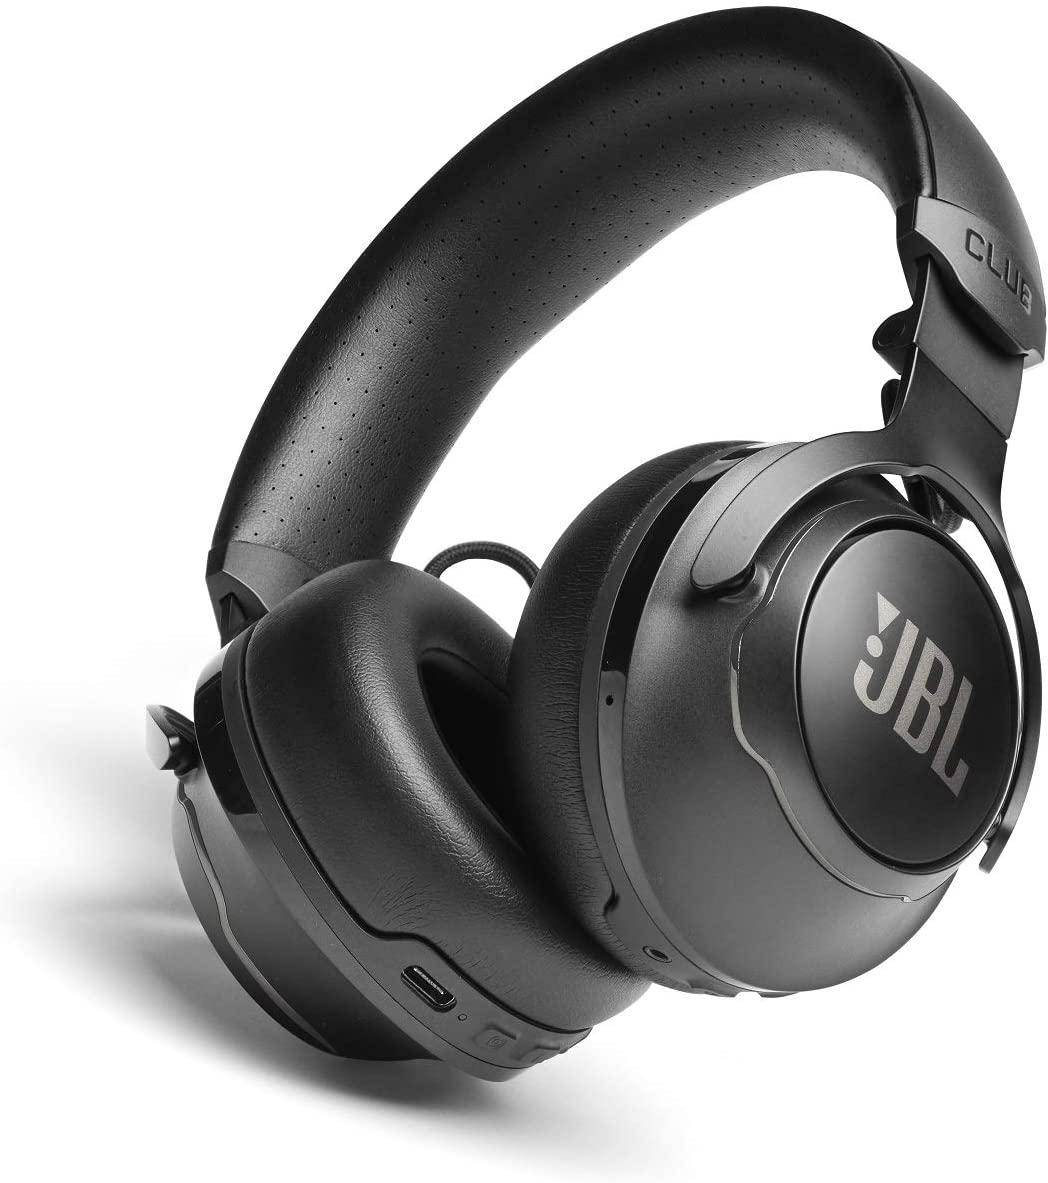 JBL CLUB 700BT Wireless On The Ear Headphones zoom image